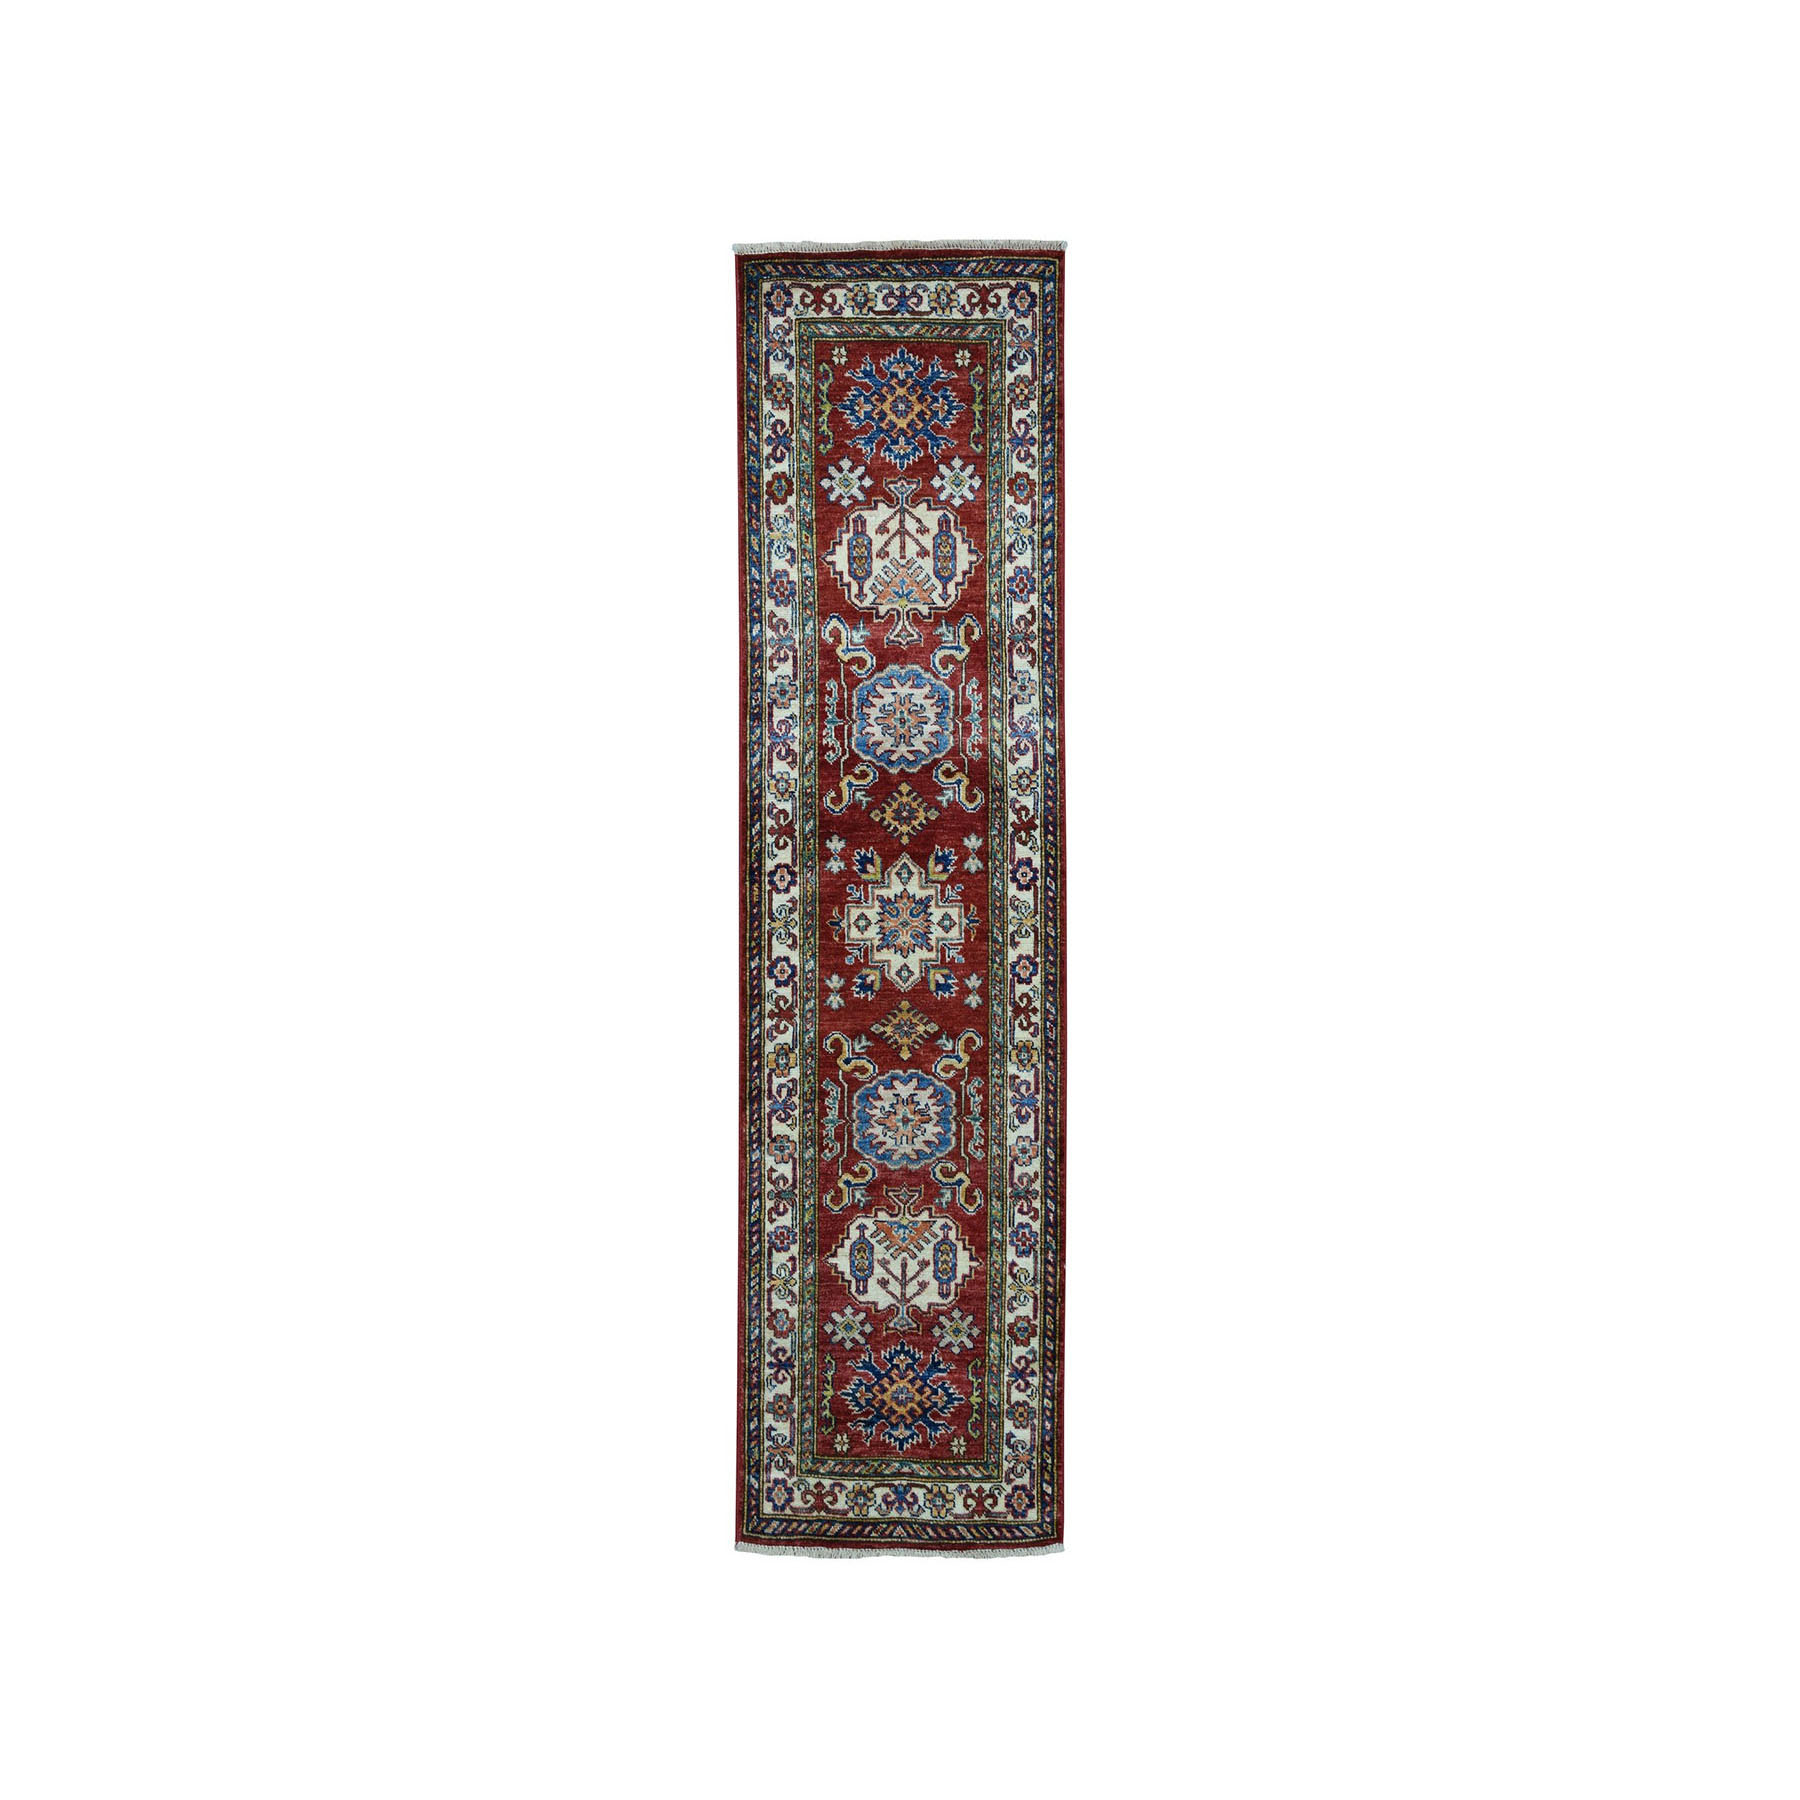 2'X6' Red Super Kazak Pure Wool Geometric Design Hand-Knotted Runner Oriental Rug moaea0a7